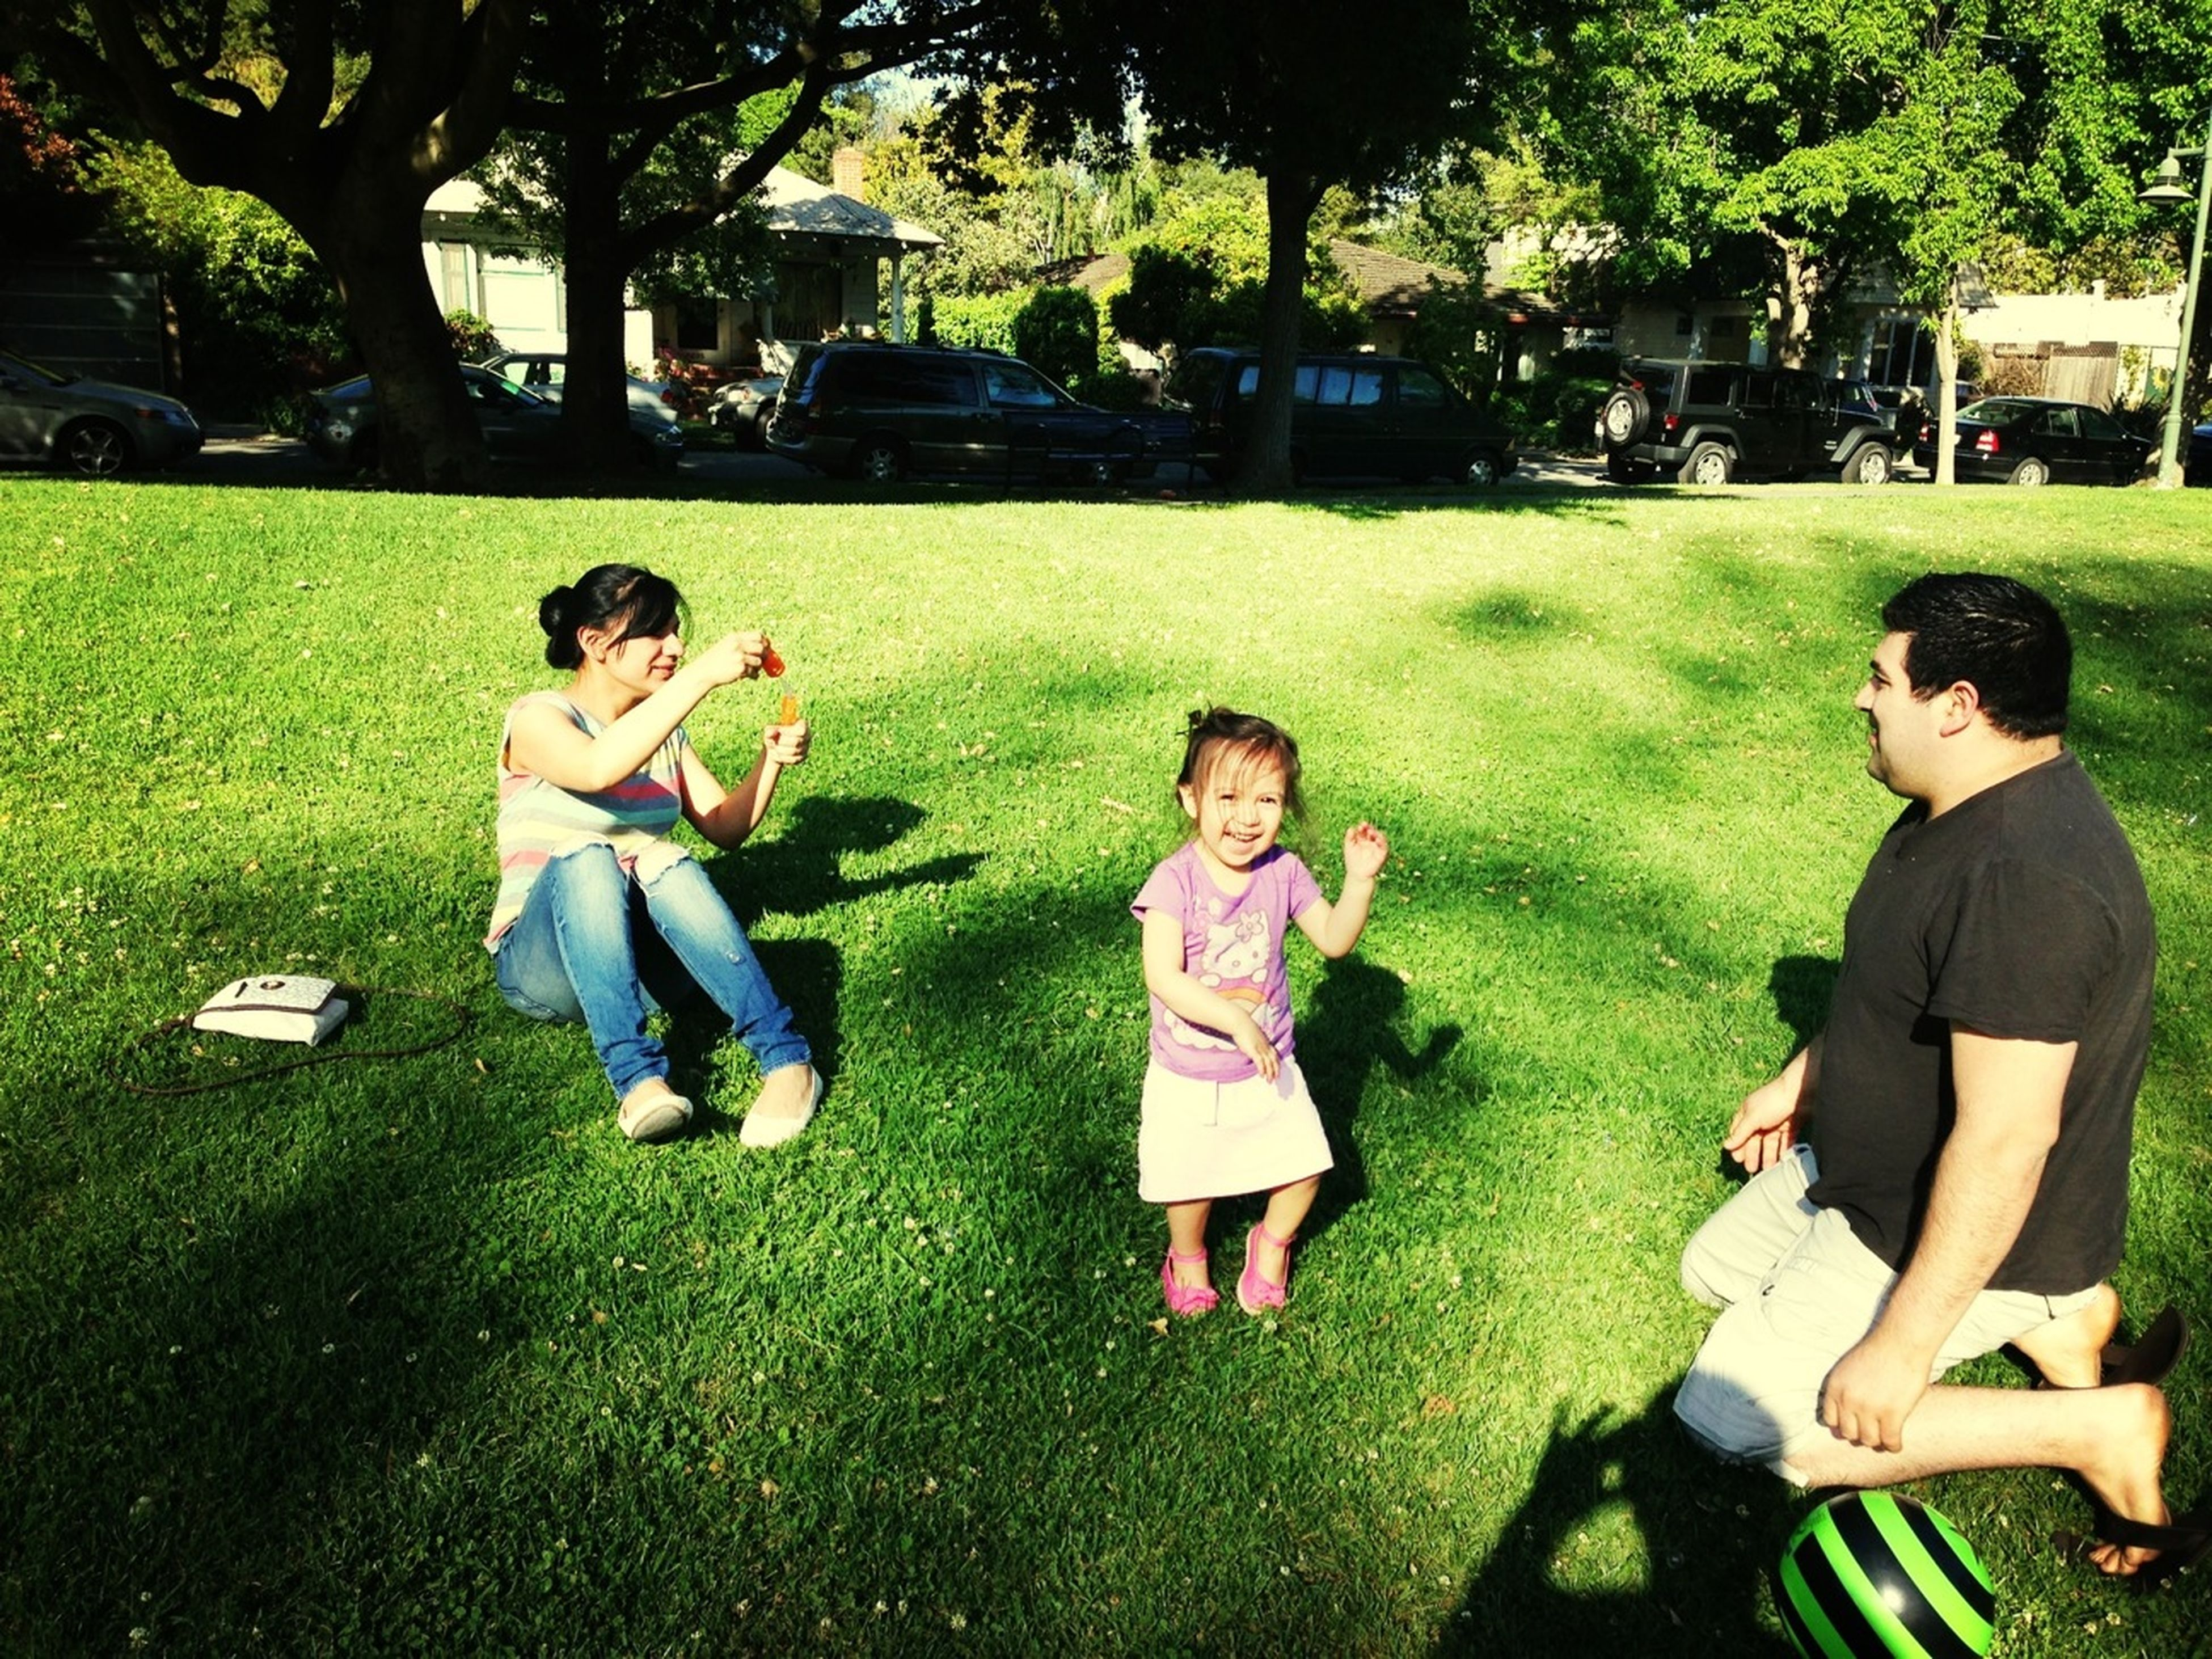 lifestyles, leisure activity, grass, togetherness, bonding, casual clothing, tree, sitting, park - man made space, love, person, friendship, green color, family, young men, boys, lawn, park